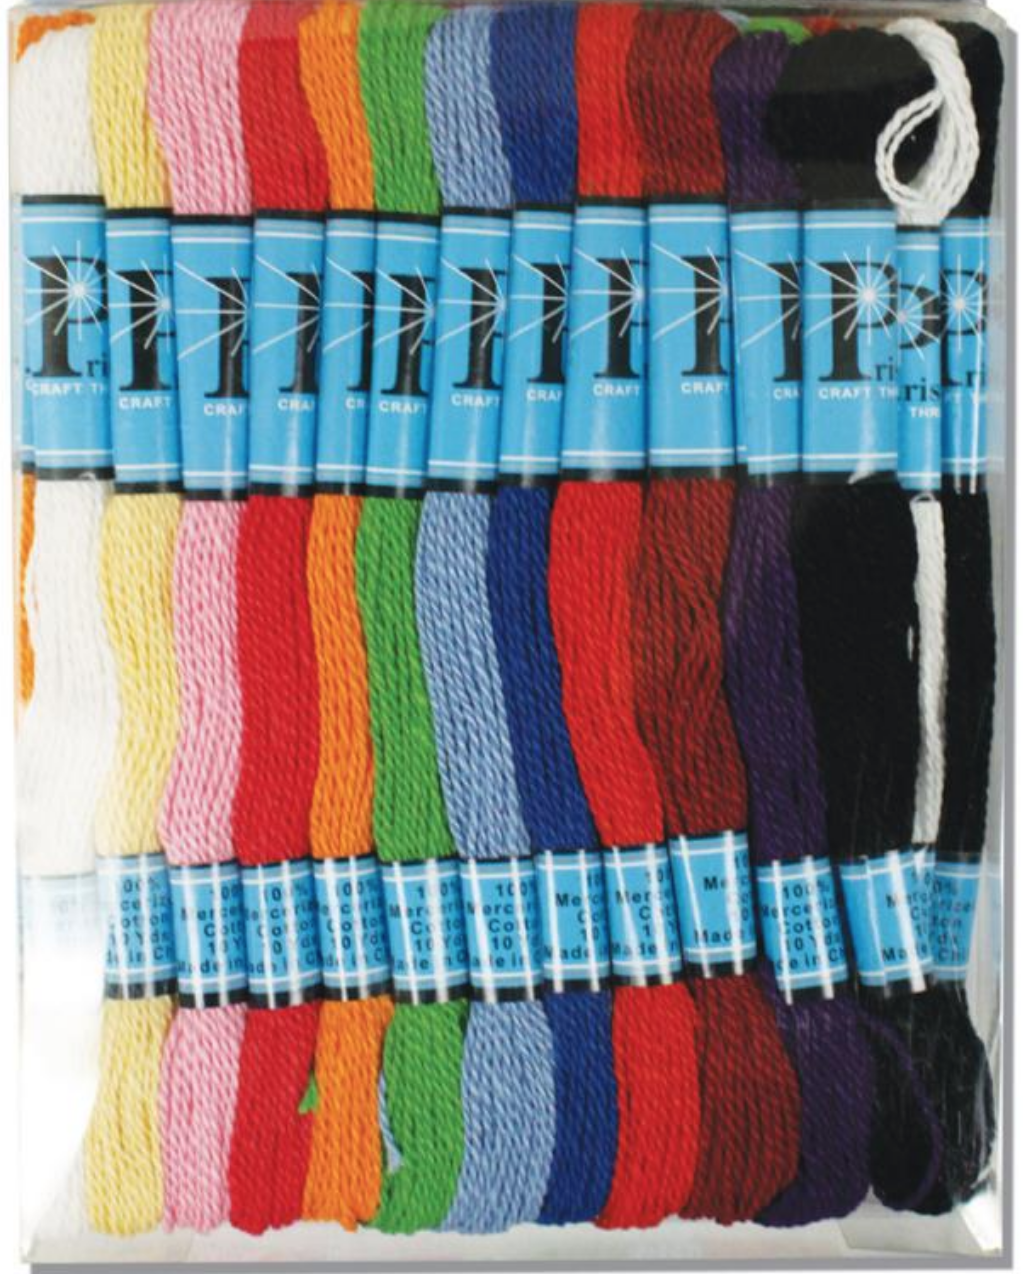 36 Skein Cotton Thread Assortment